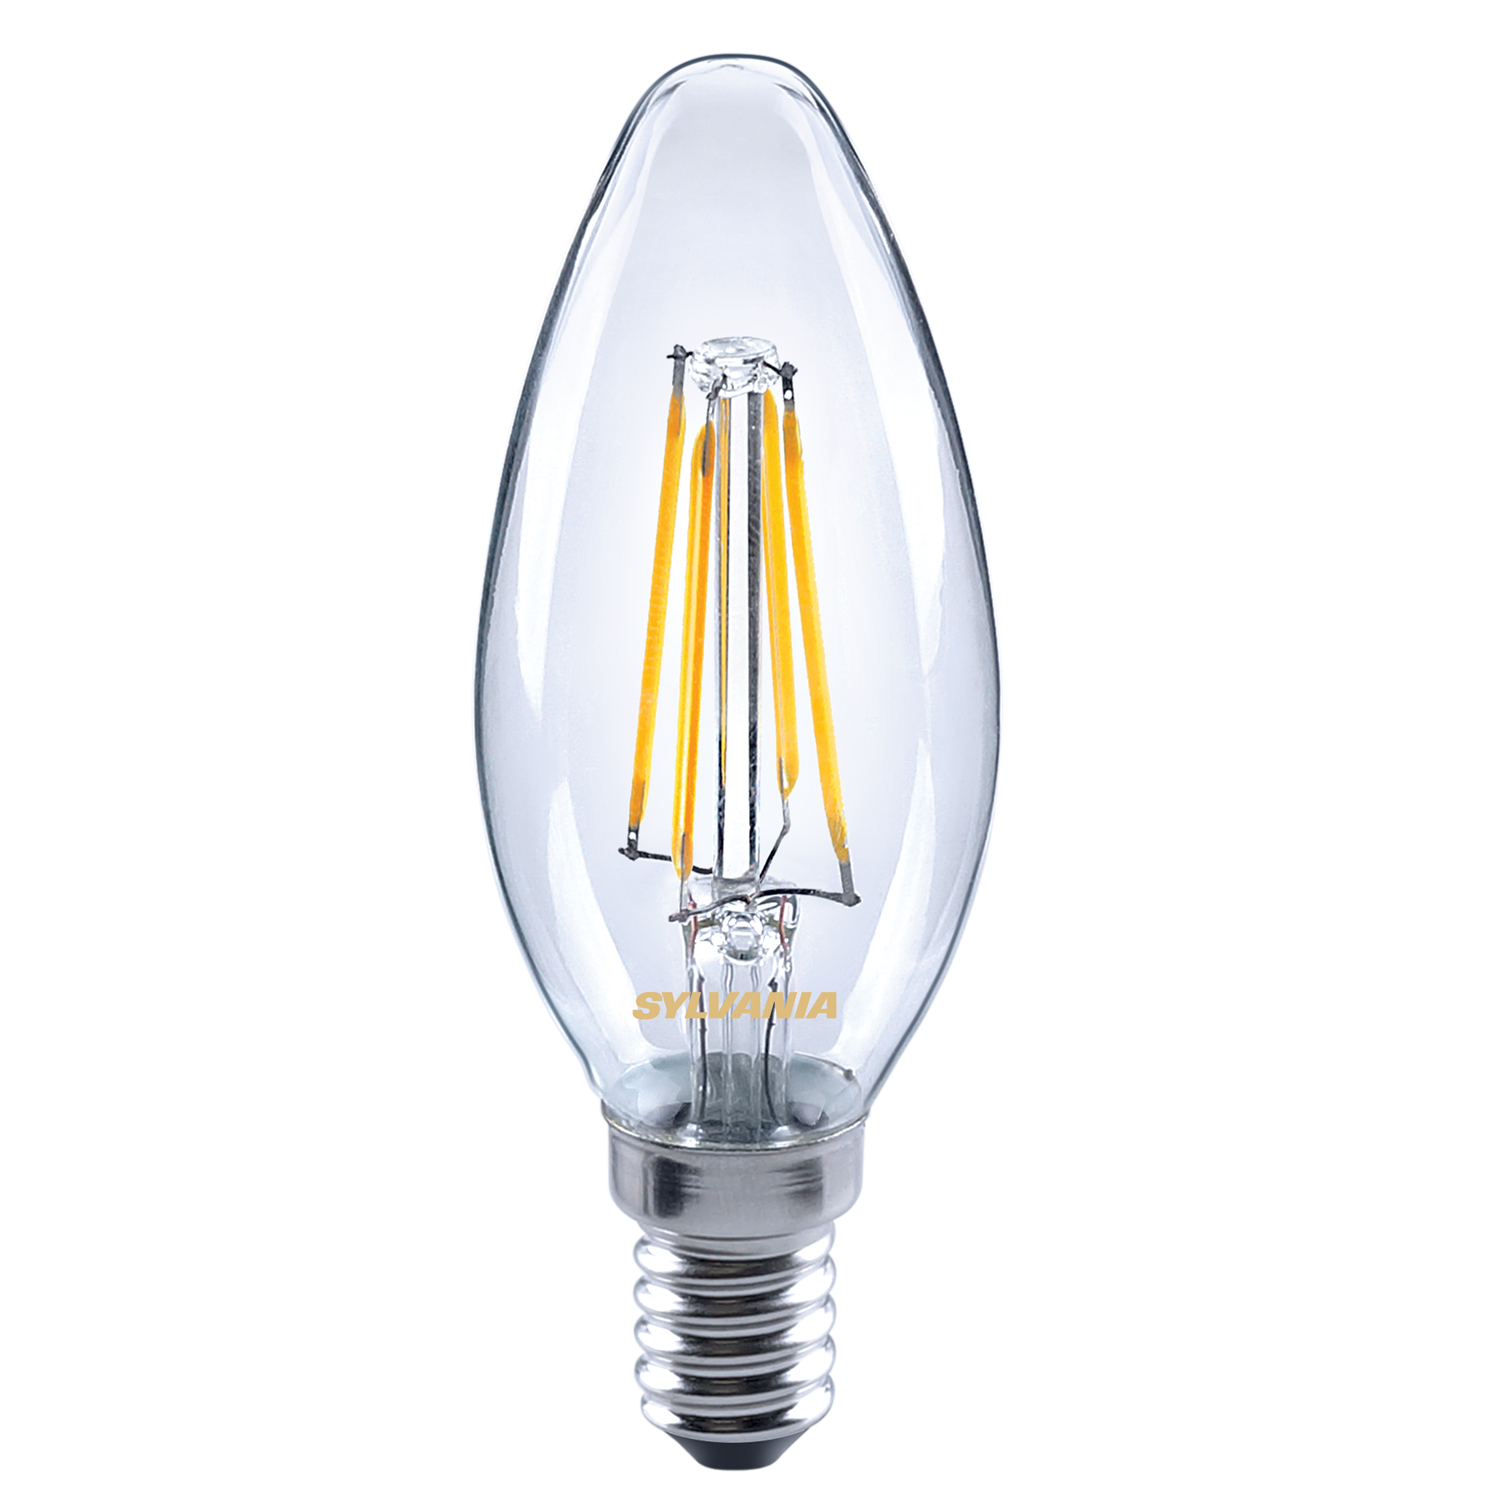 Sylvania 4.4W = 40W 470lm LED traditional candle light bulb E14 SES warm white Thumbnail 1